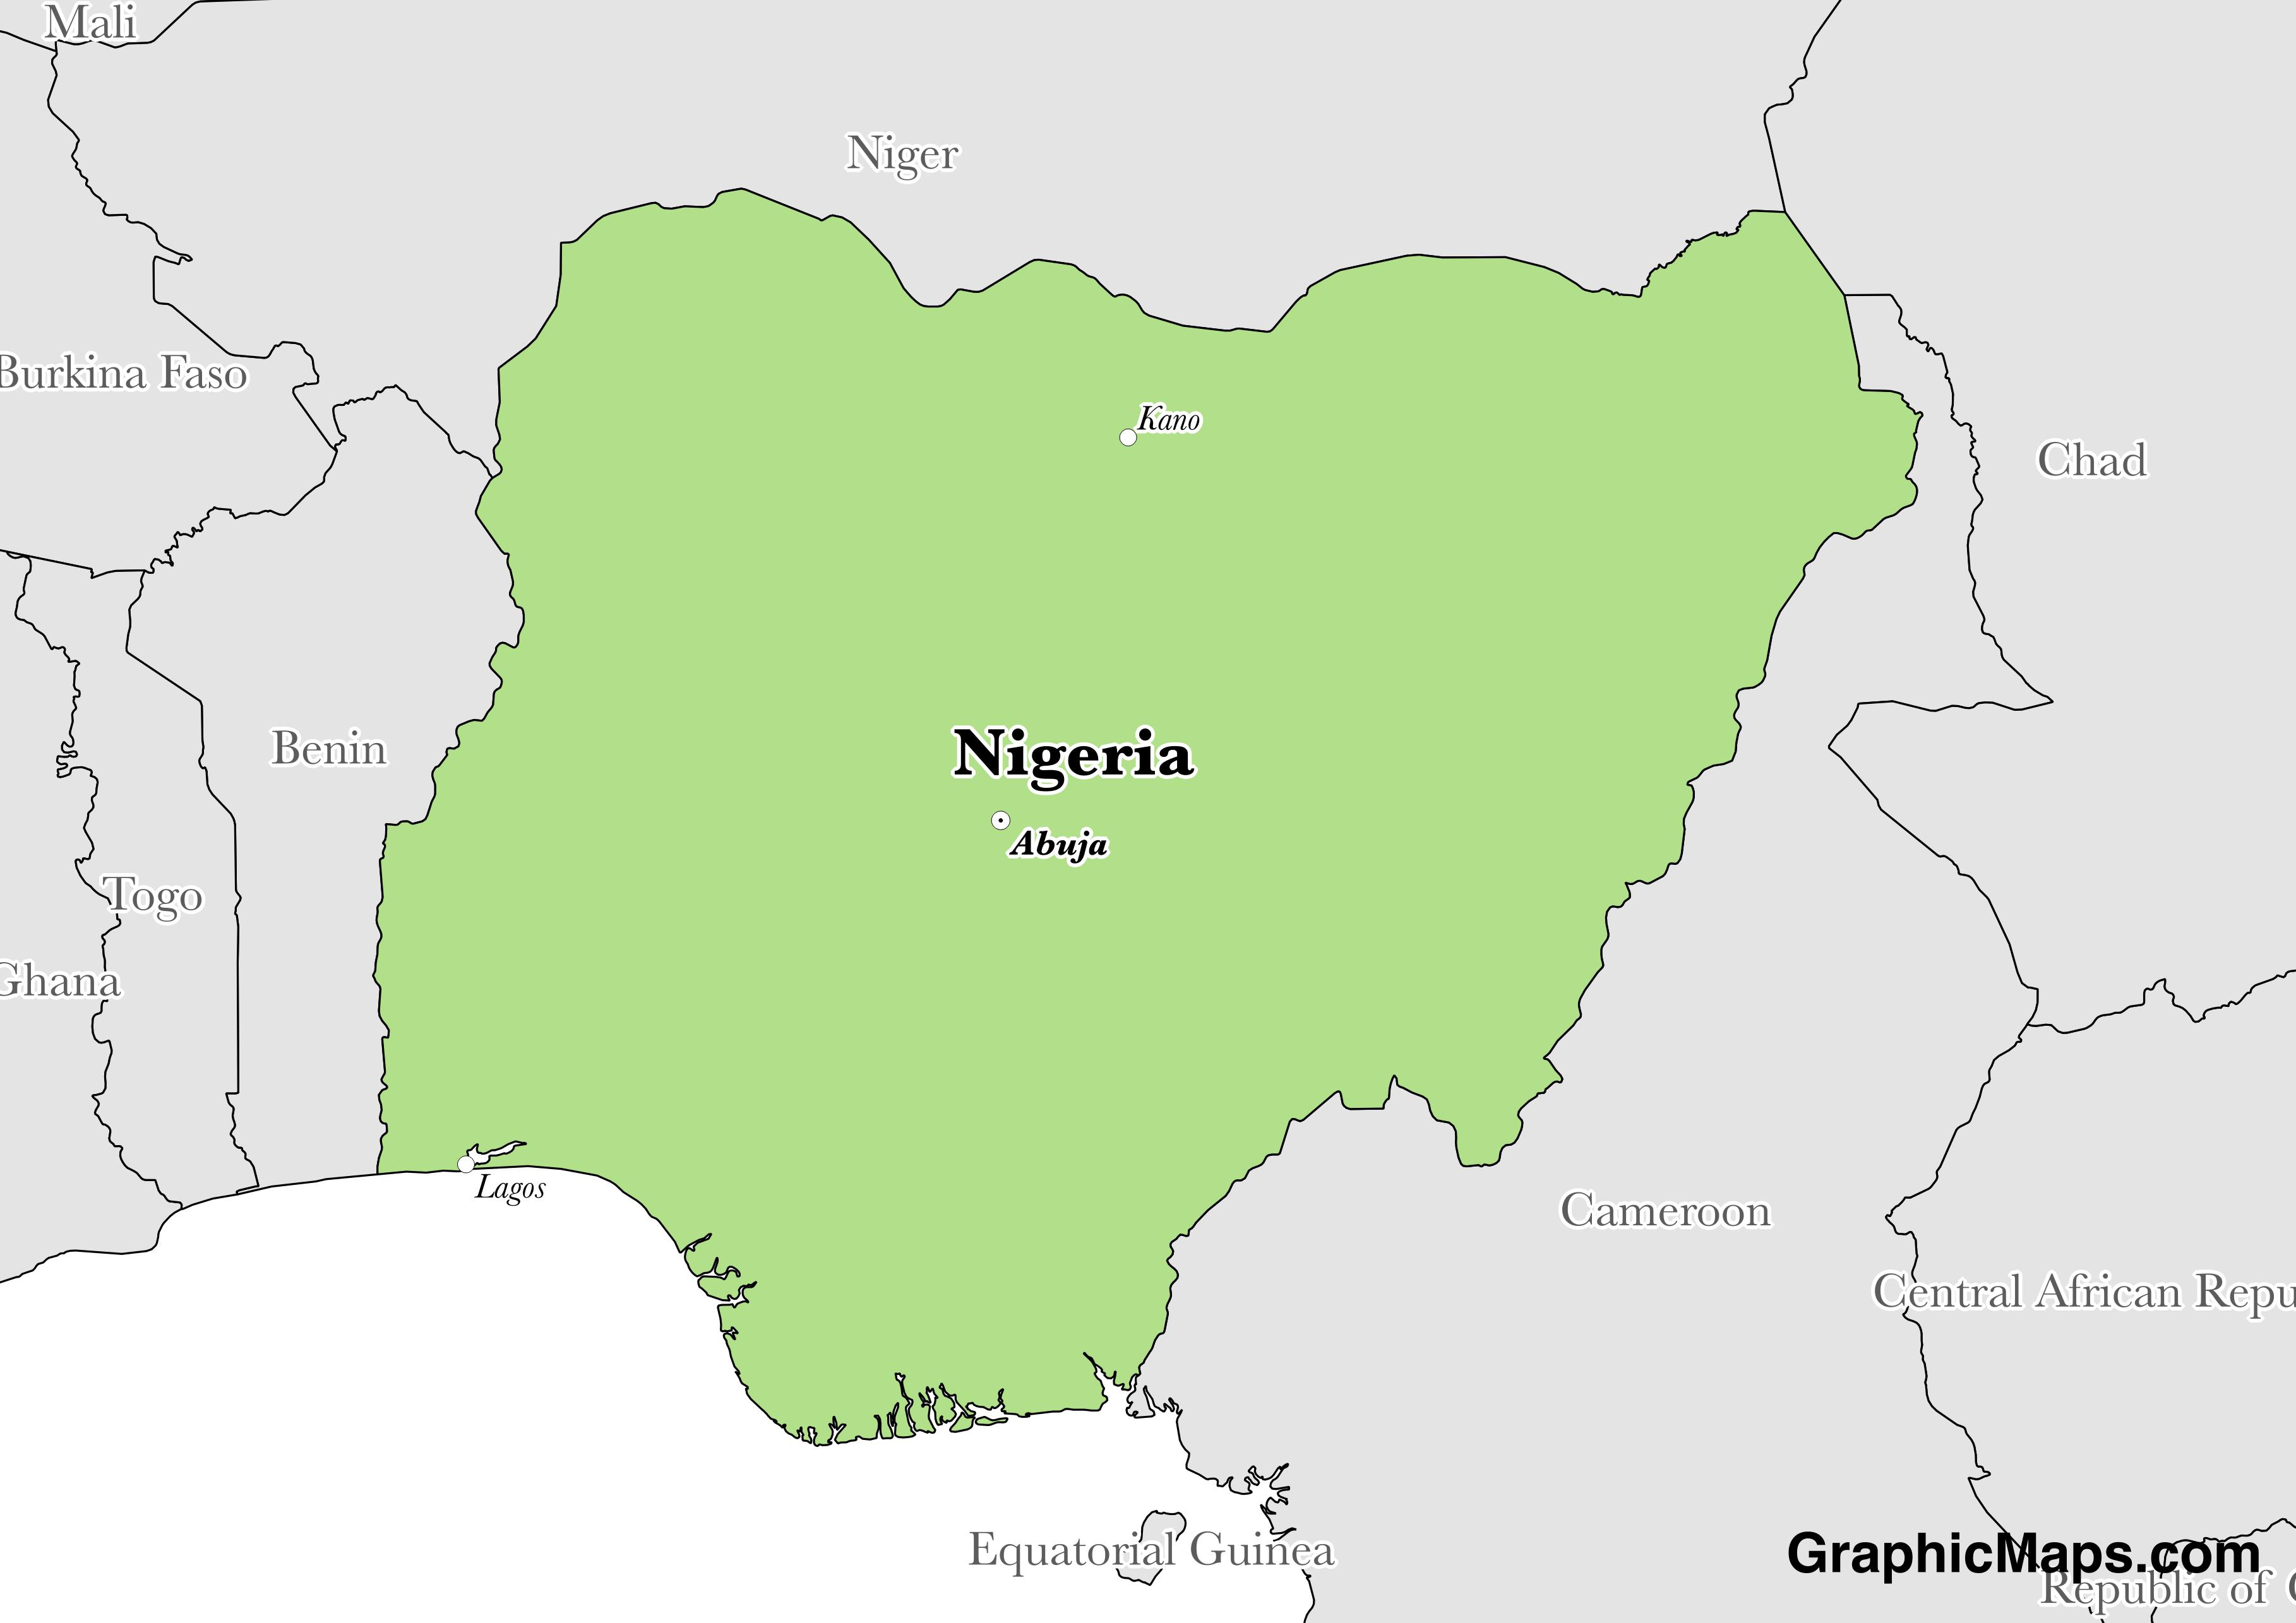 Map showing the location of Nigeria